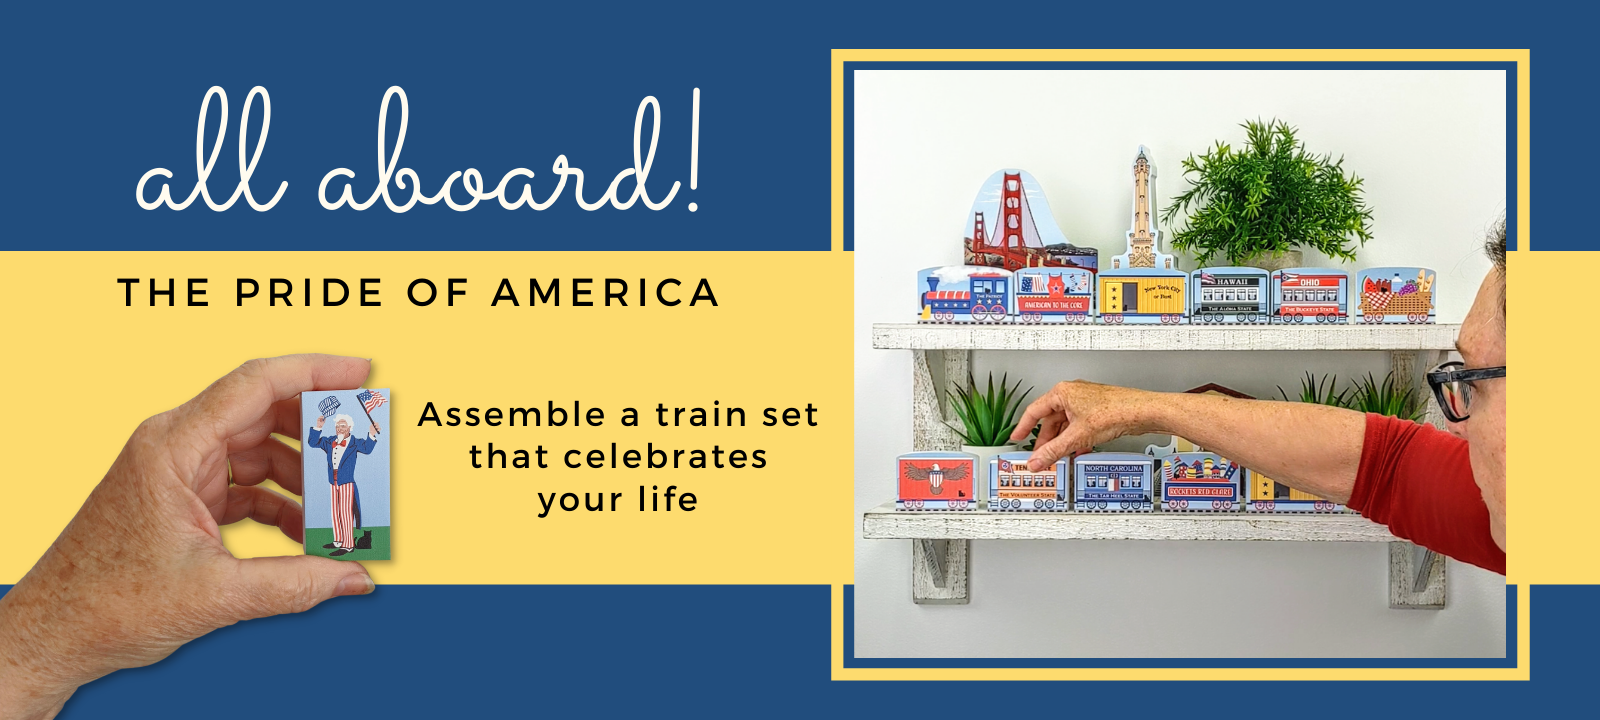 Celebrate your life by building the Pride Of America train with special train cars.